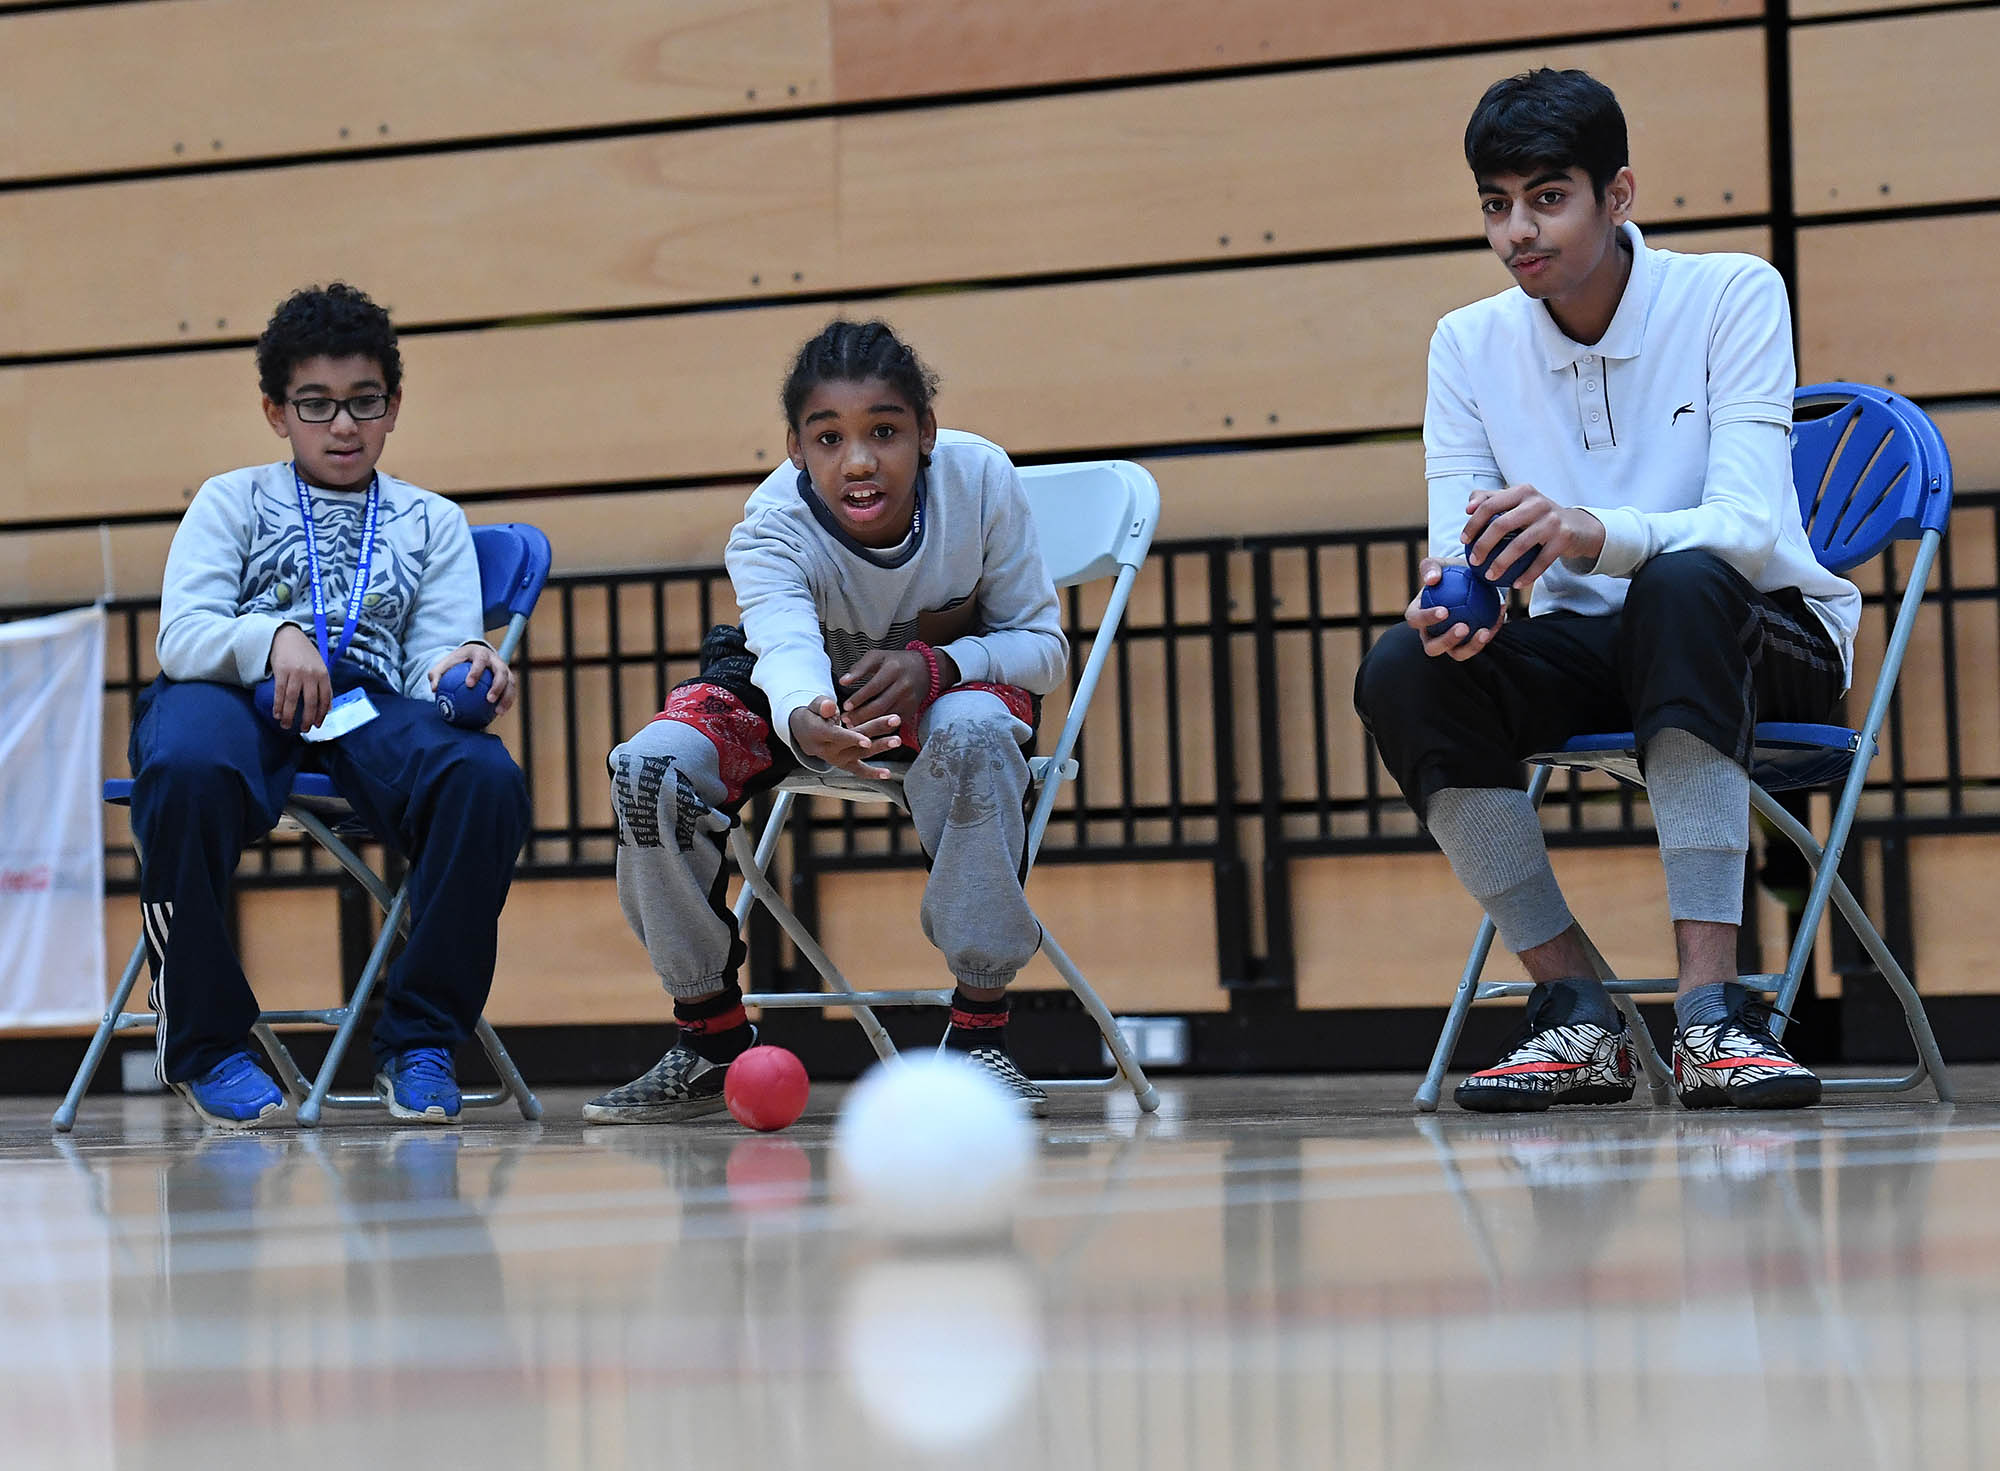 3 children playing Boccia